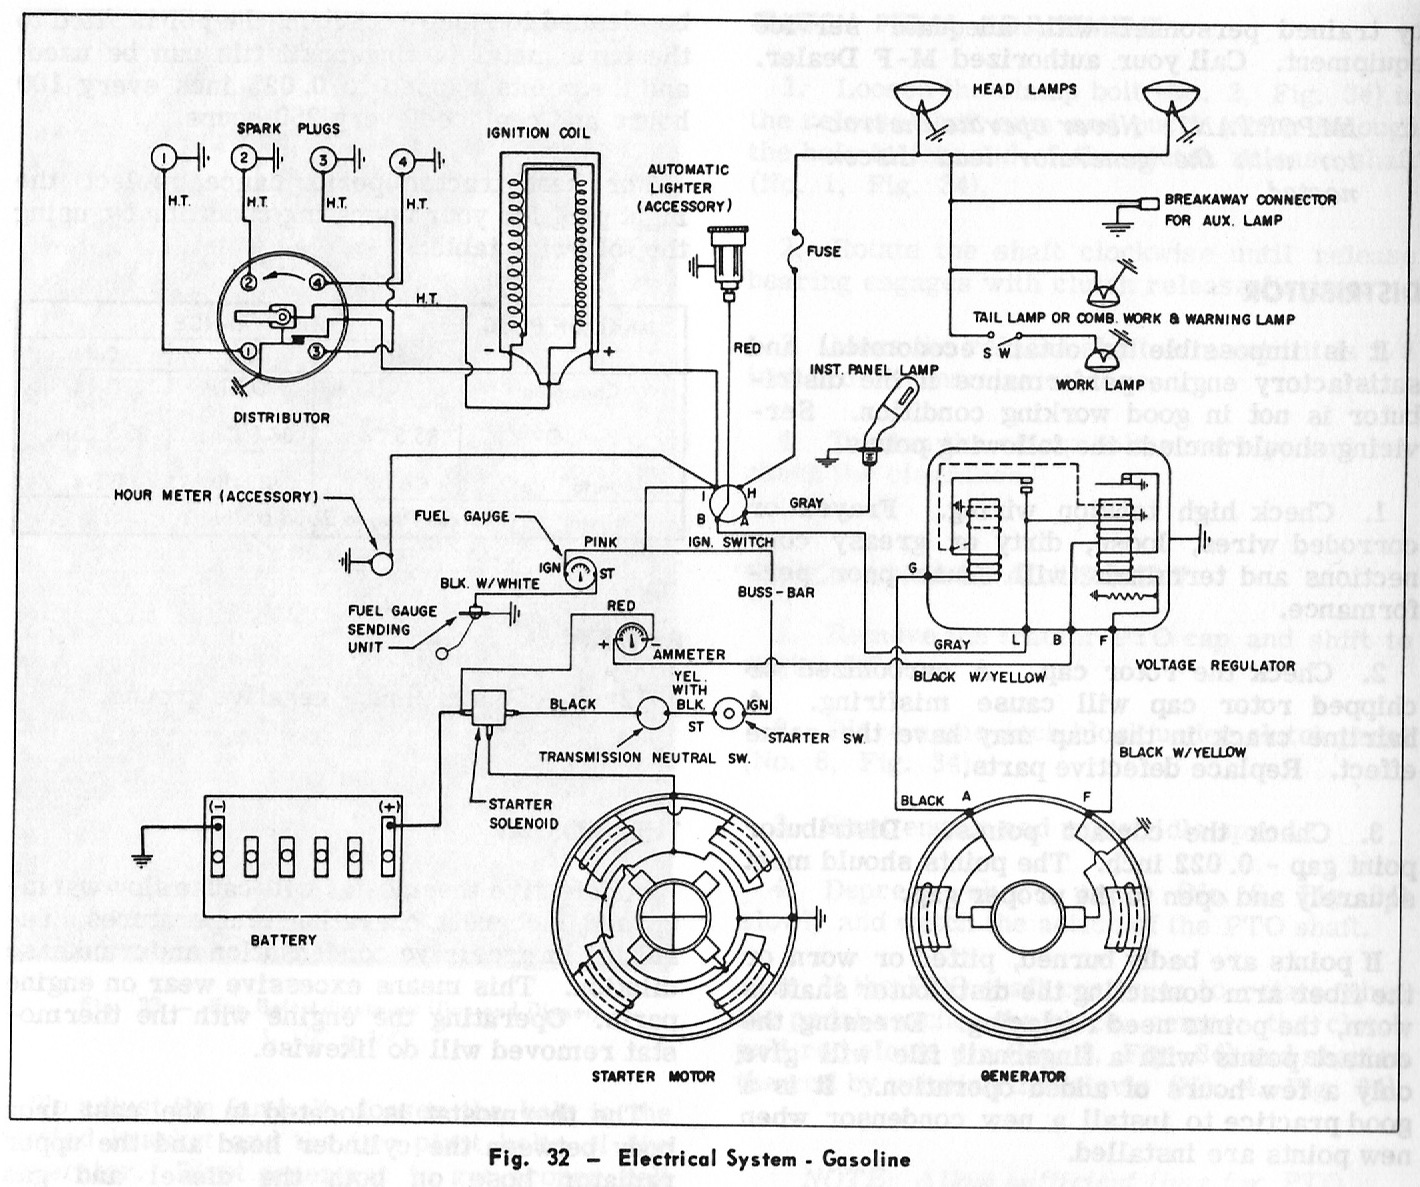 1955 ford f100 wiring diagram  ford  auto wiring diagram